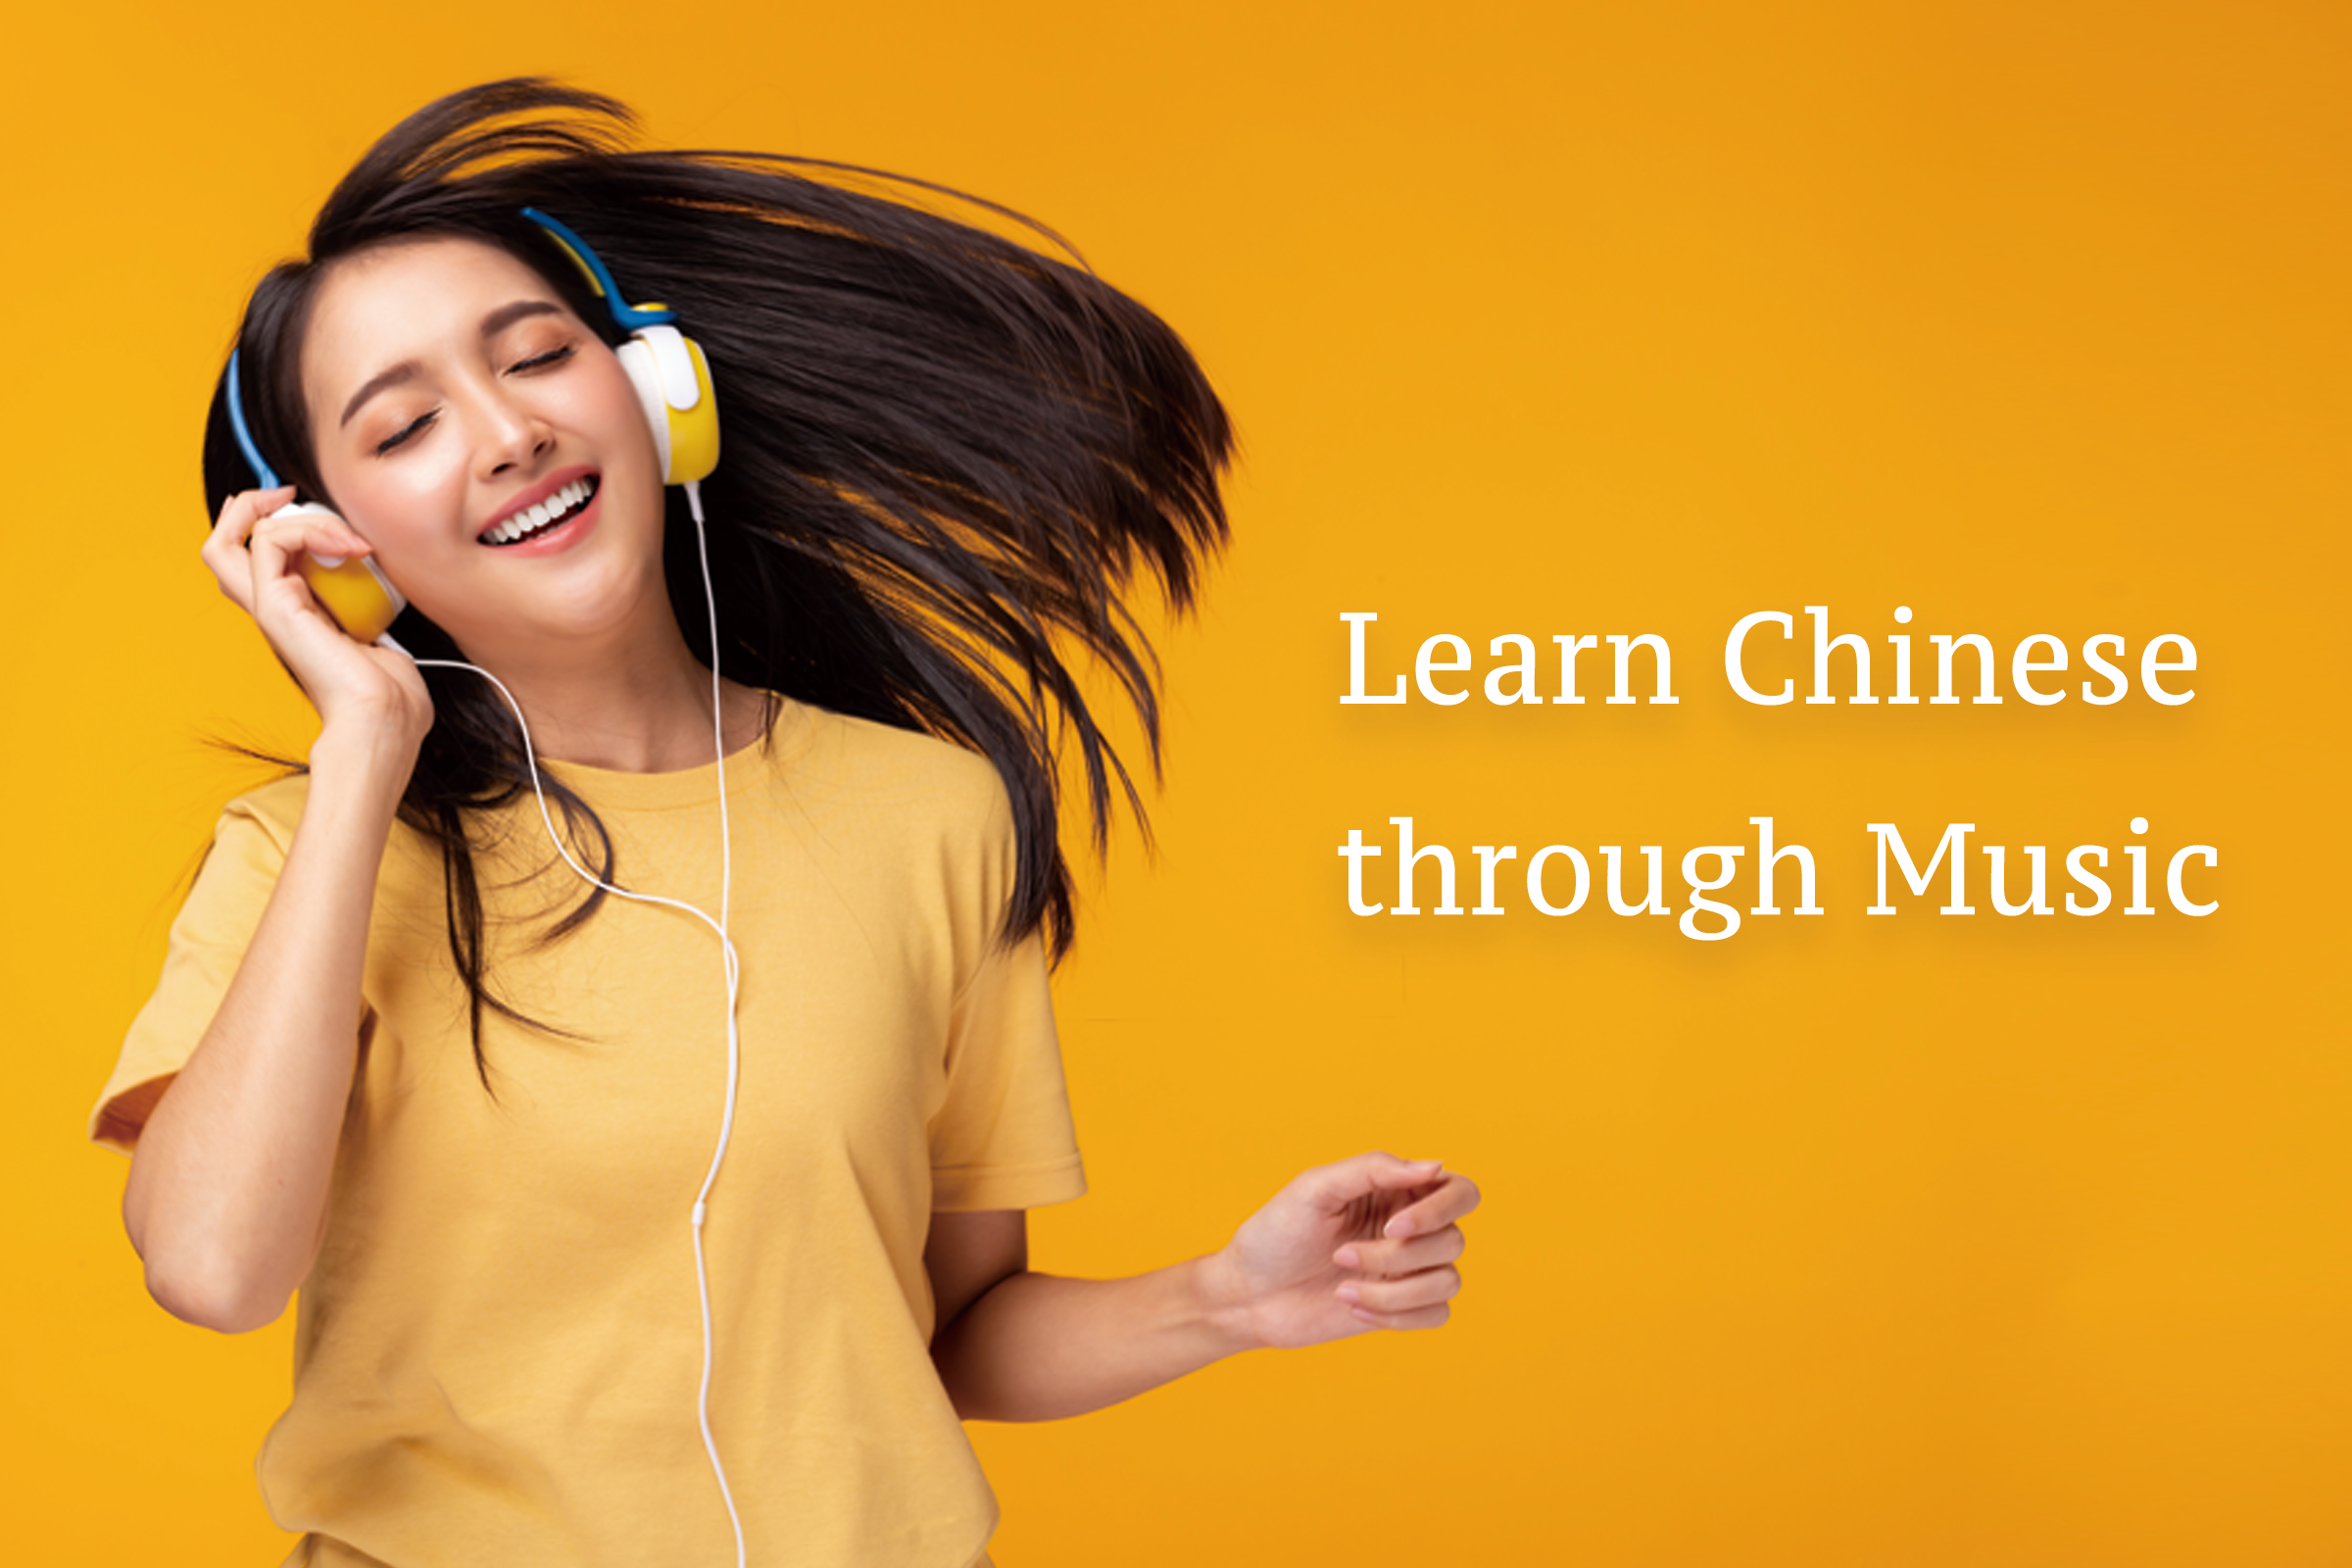 learn chinese through music-1